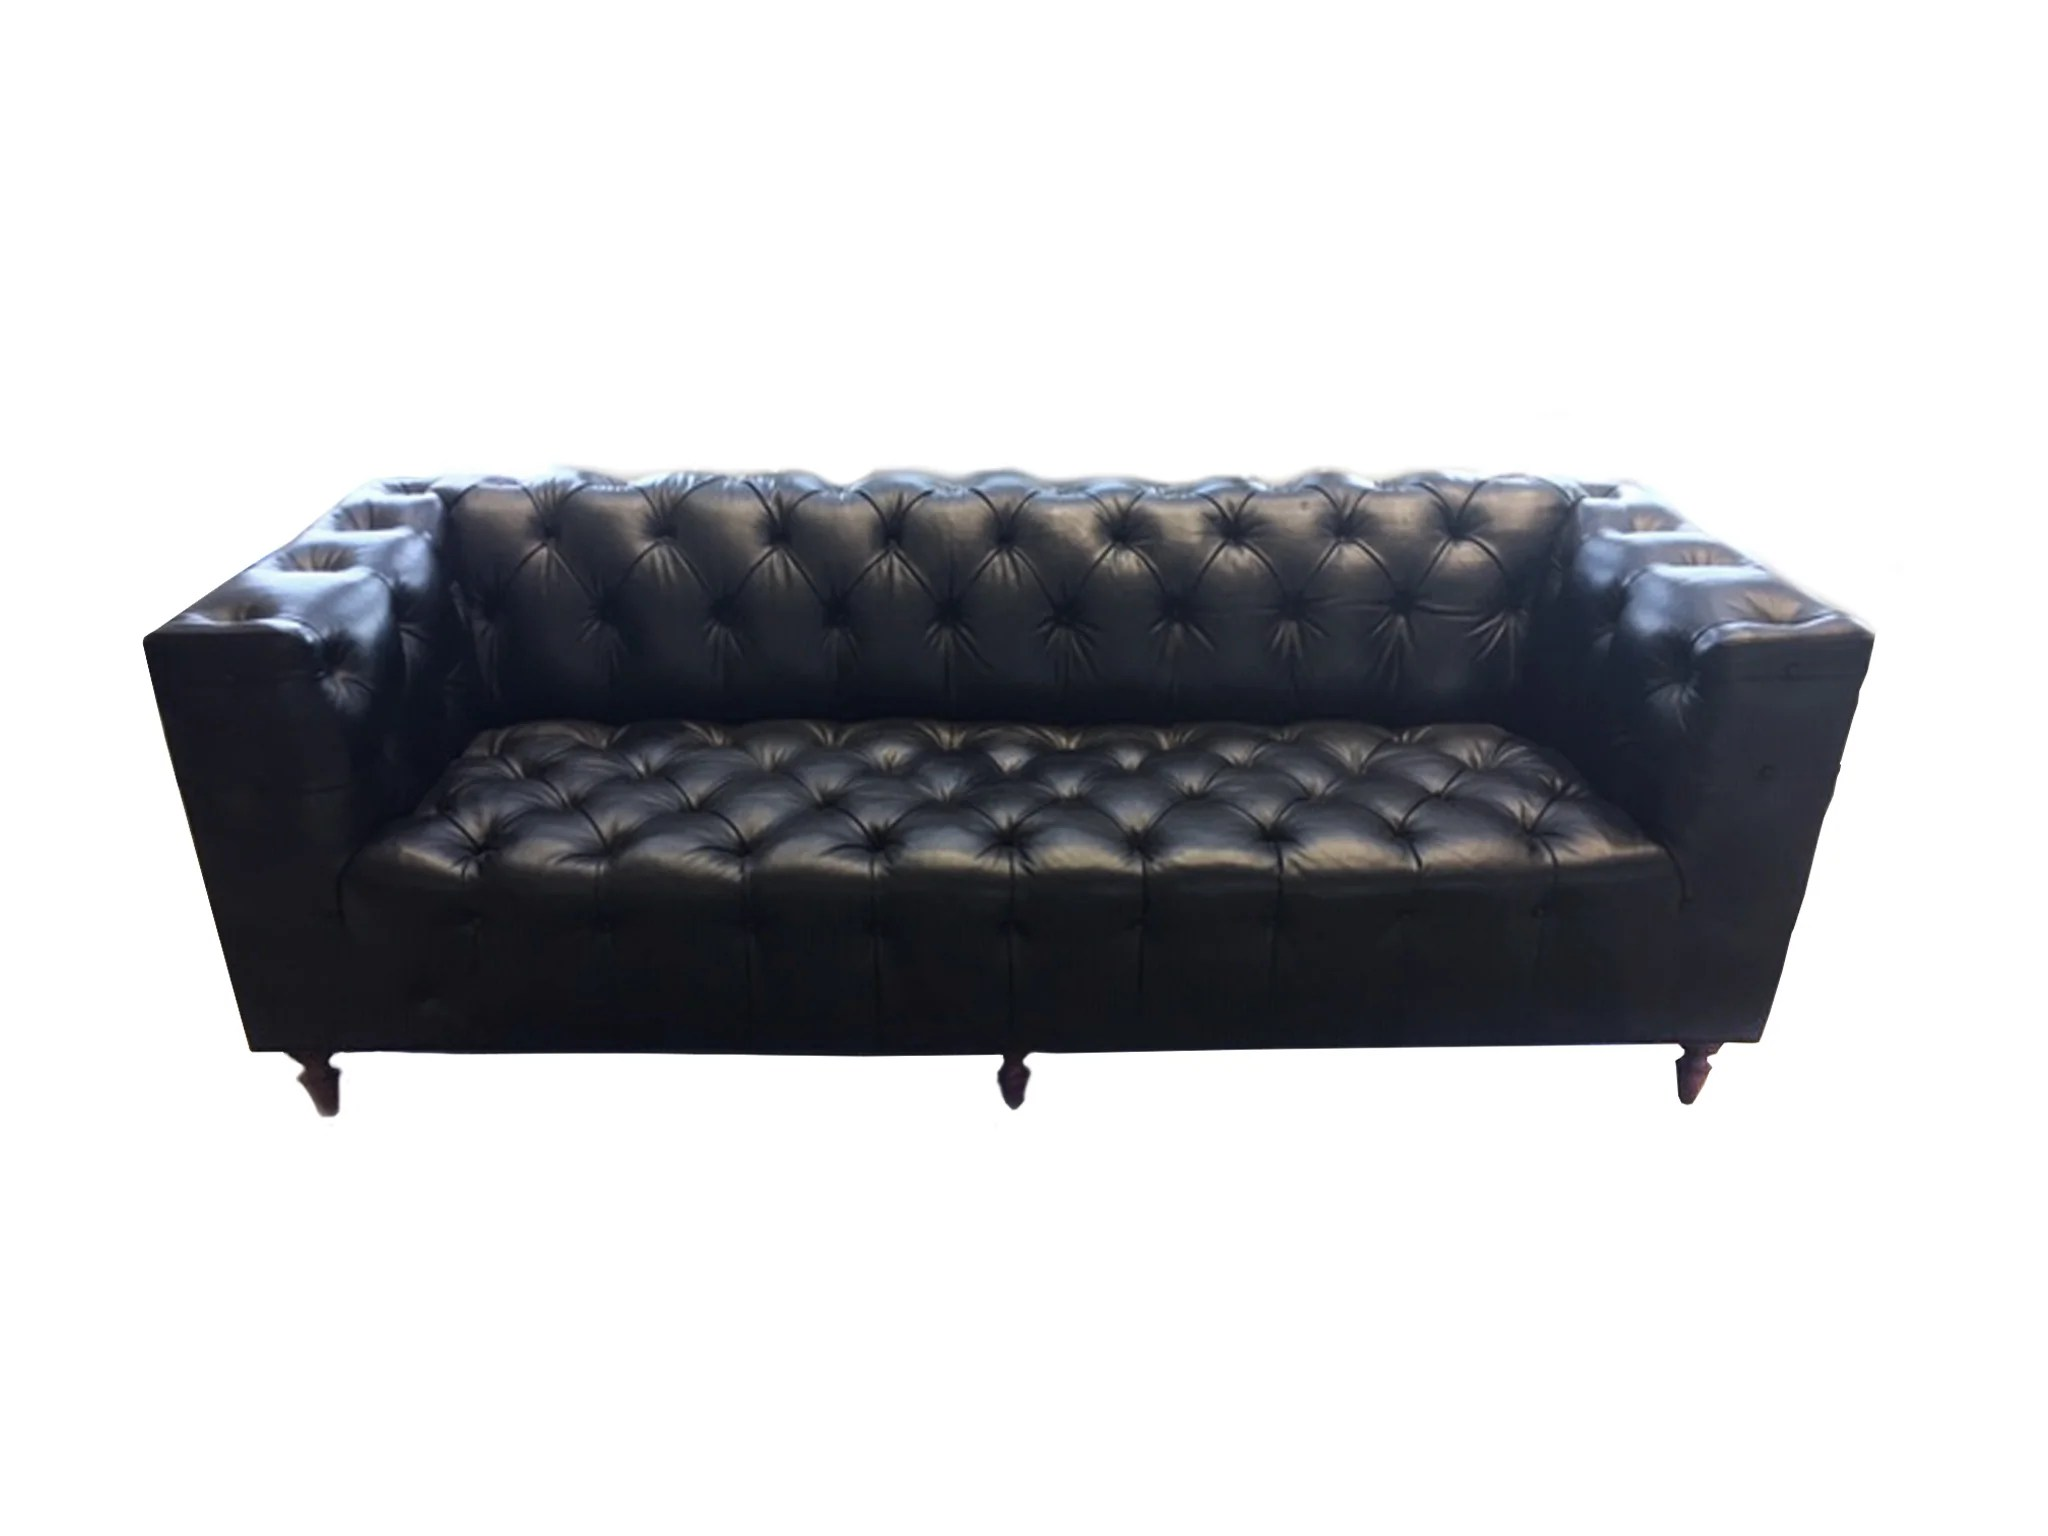 Chesterfield Sofa 1960s Leather Chesterfield Sofa In The Style Of Edward Wormley